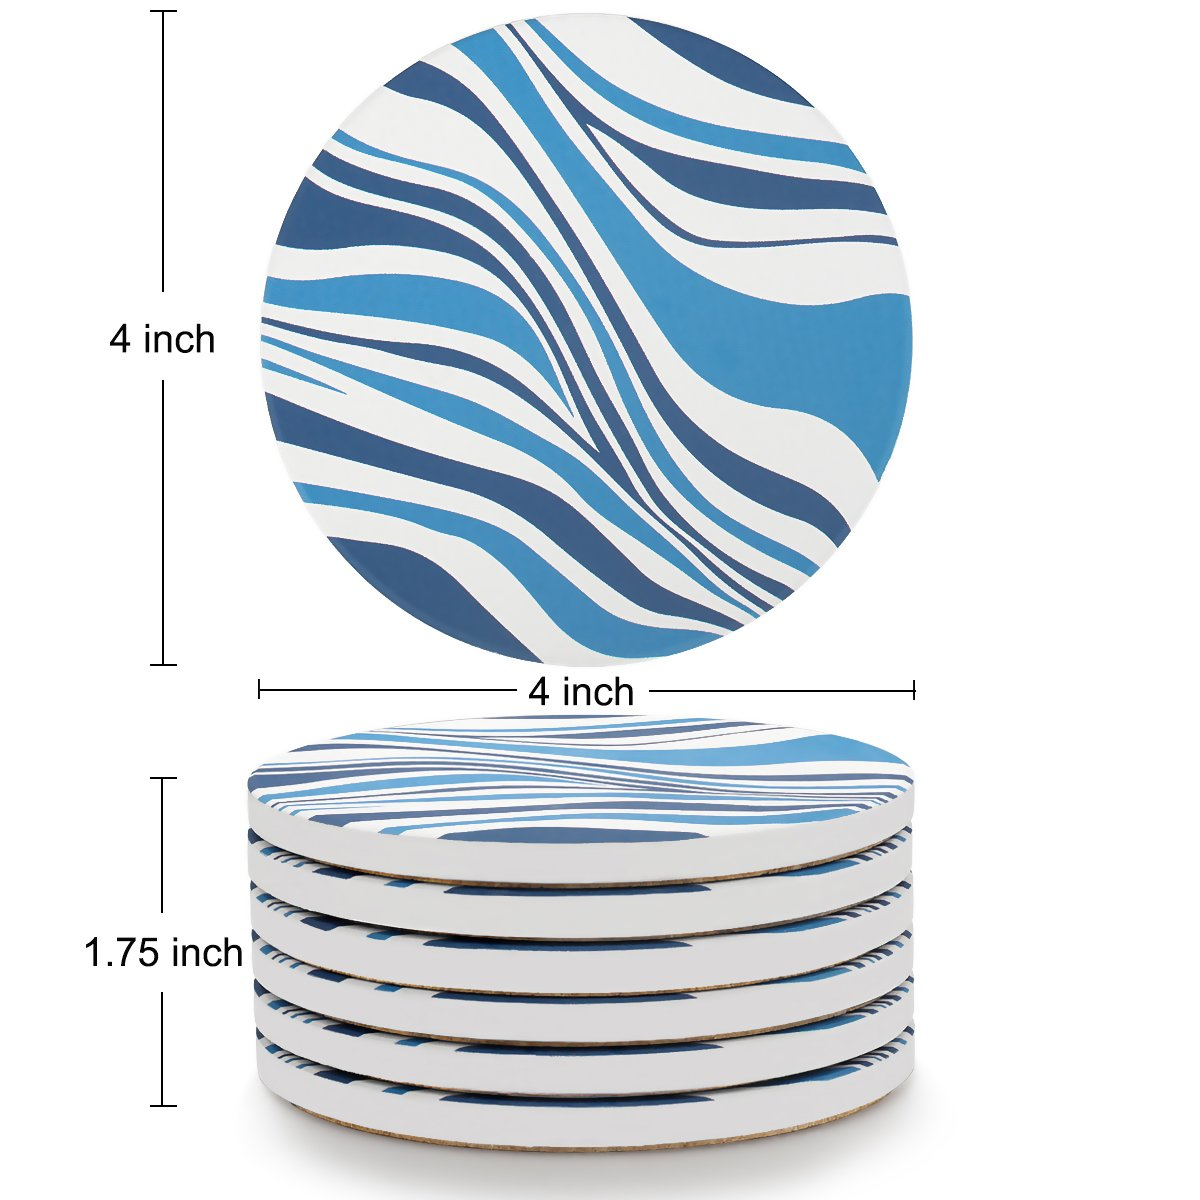 MIWARE Absorbent Stone Coasters - 6 Packs Ceramic Coaster Set for Drinks, Simple Blue and White Stripes Style